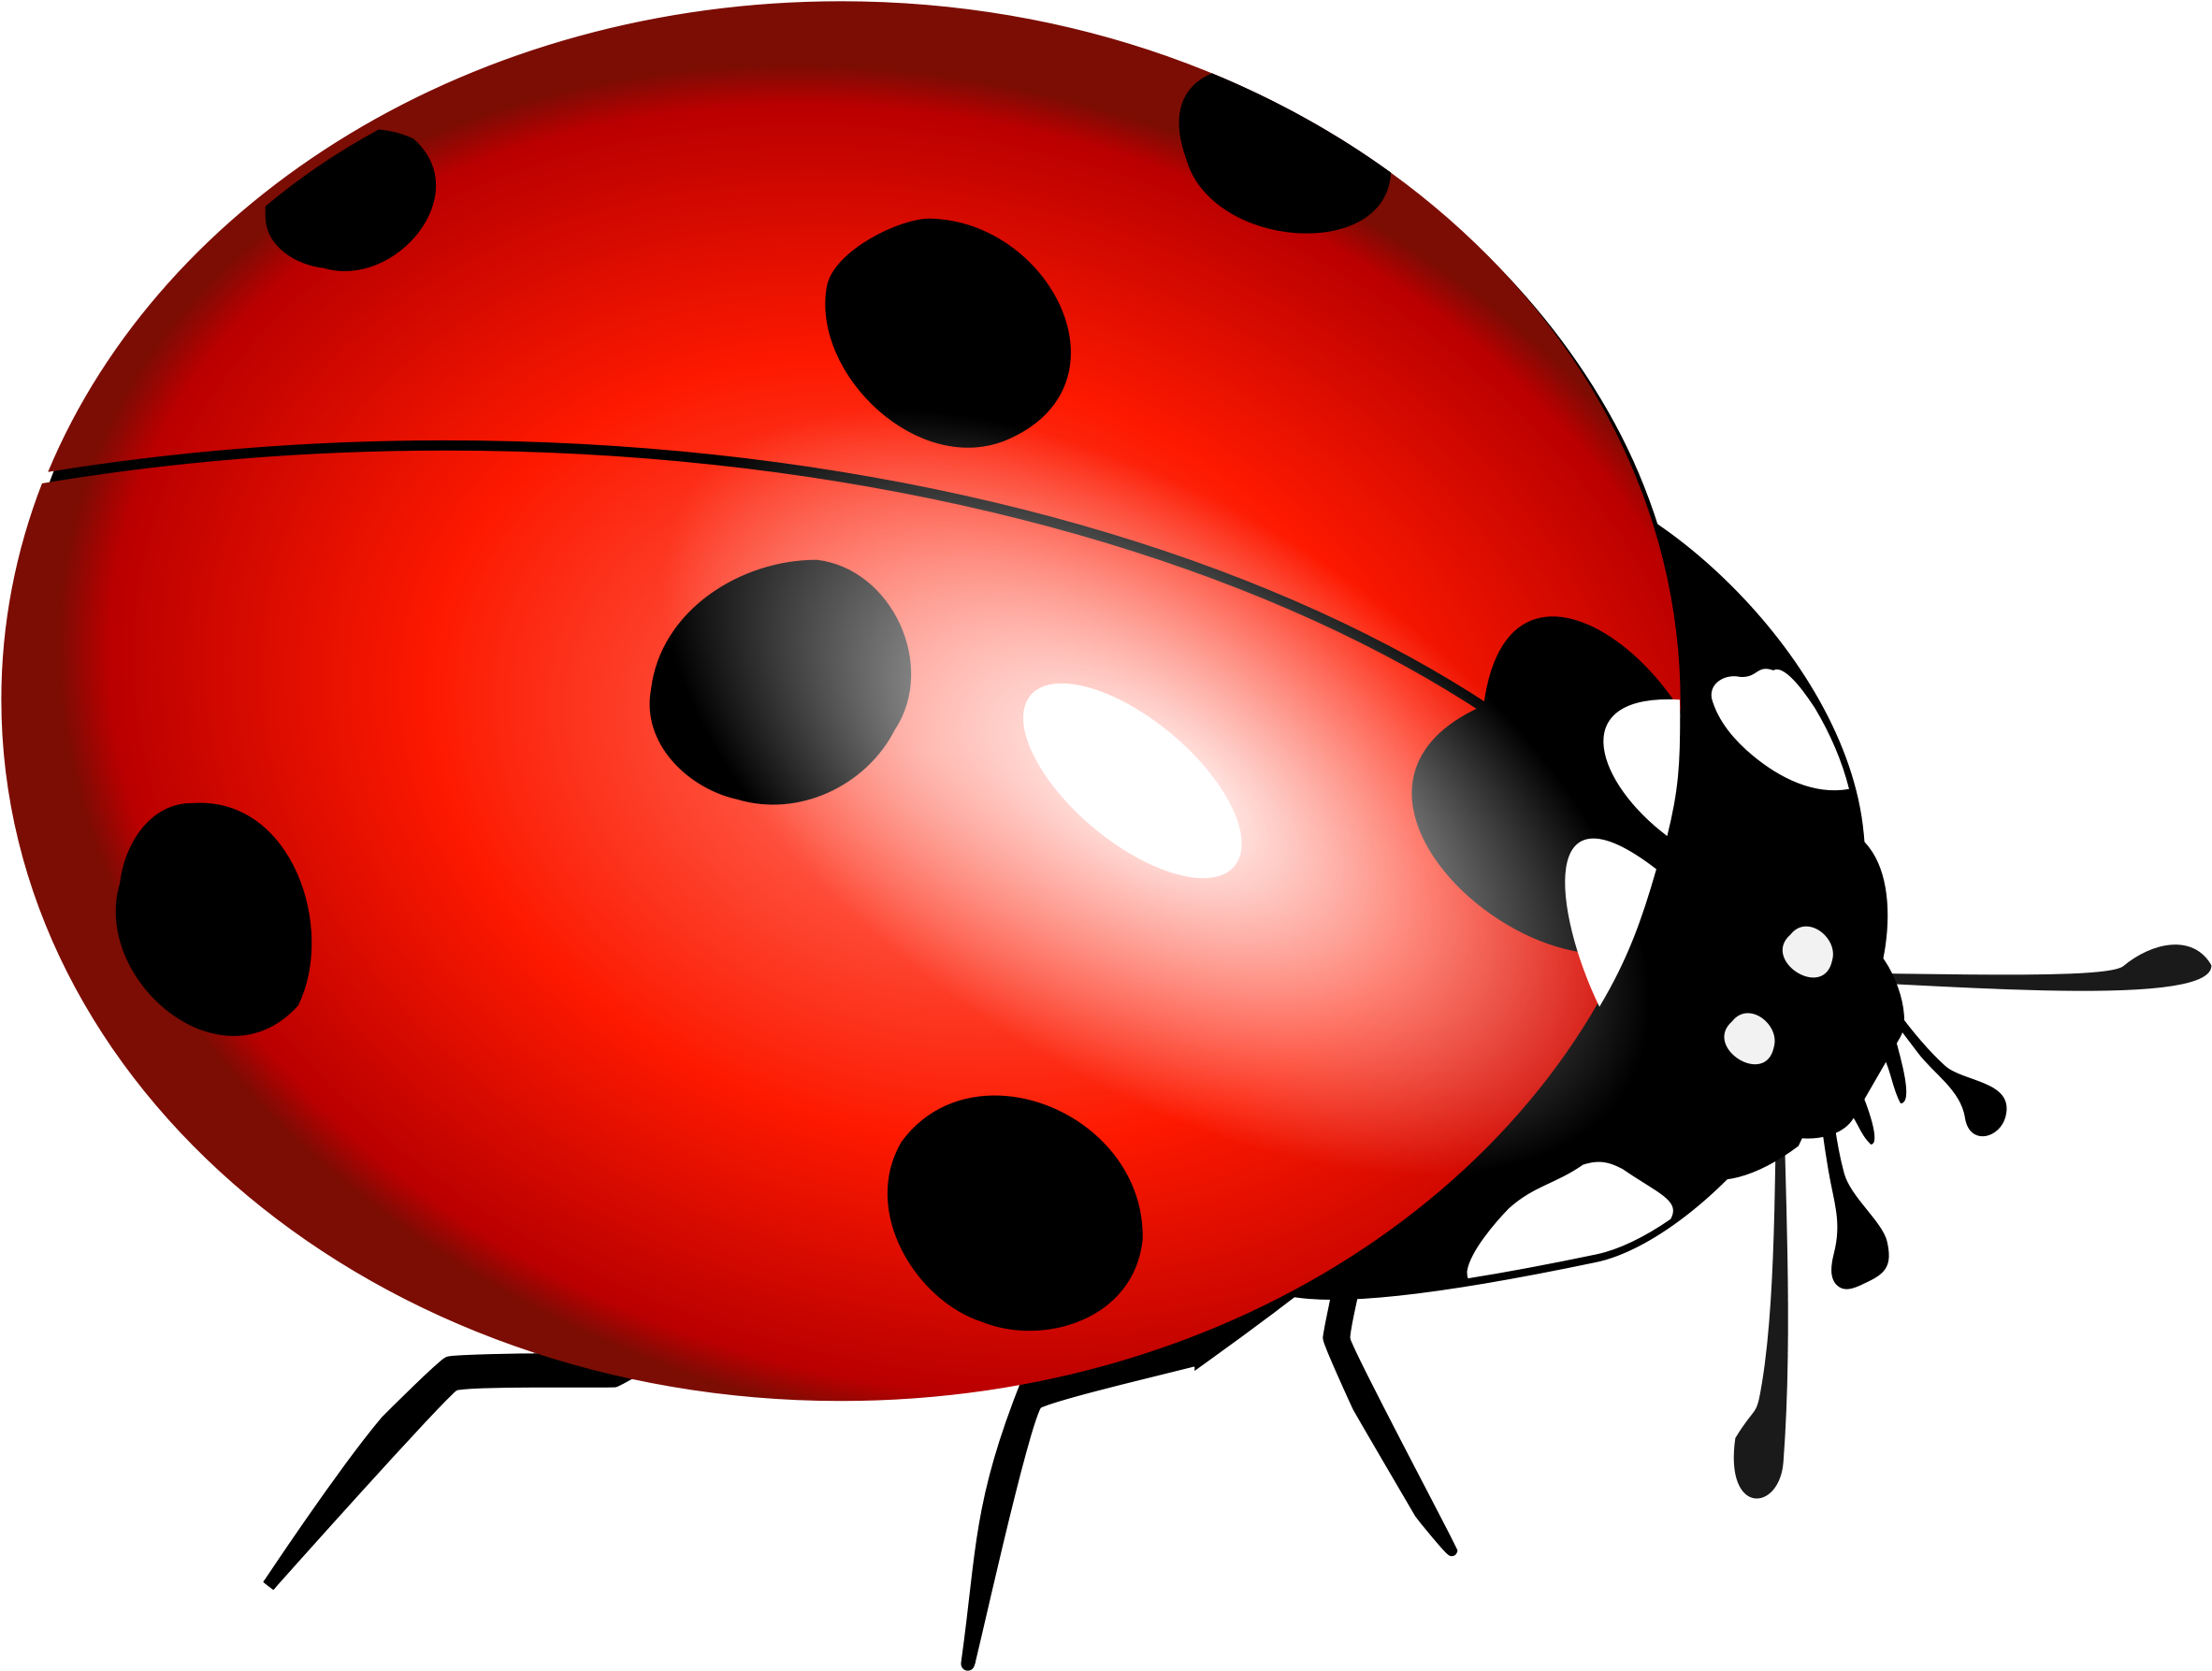 Bug clipart clear background. True transparent lady full